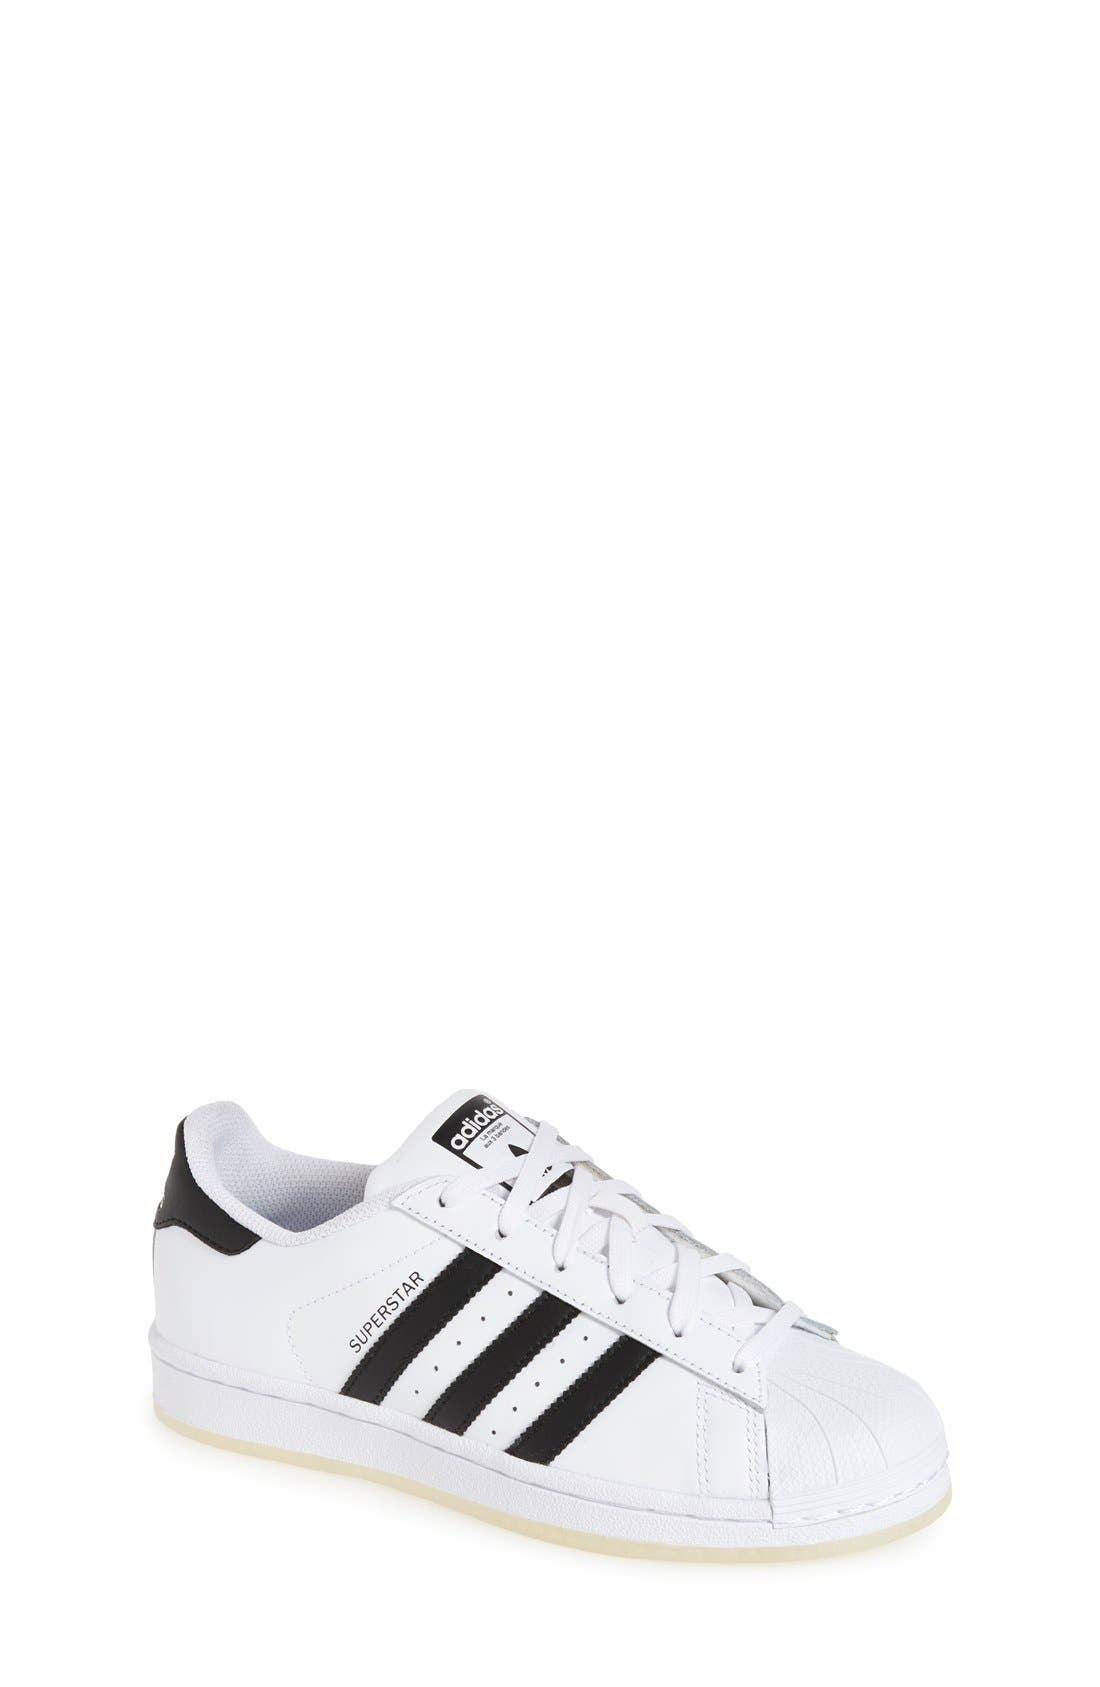 Alternate Image 1 Selected - adidas Superstar Ice Sneaker (Big Kid)